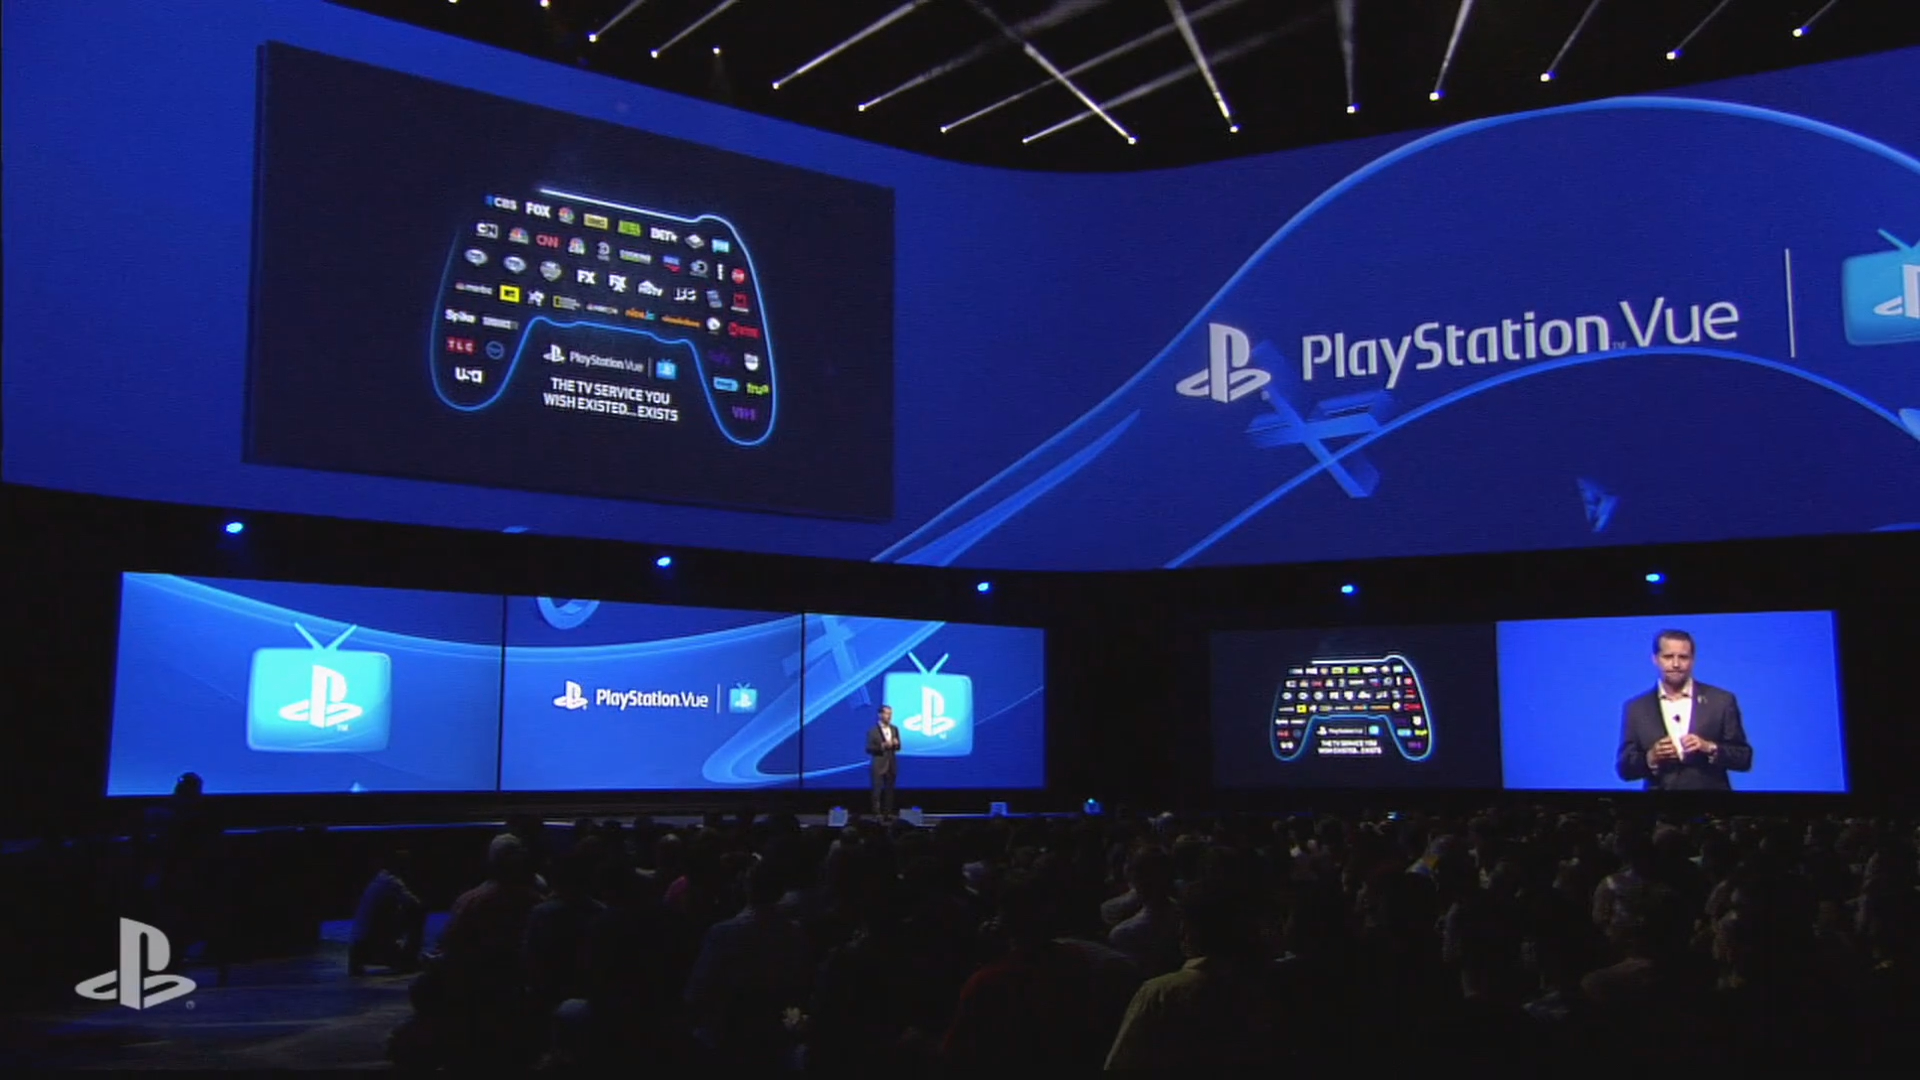 pros and cons of playstation vue for soccer fans world